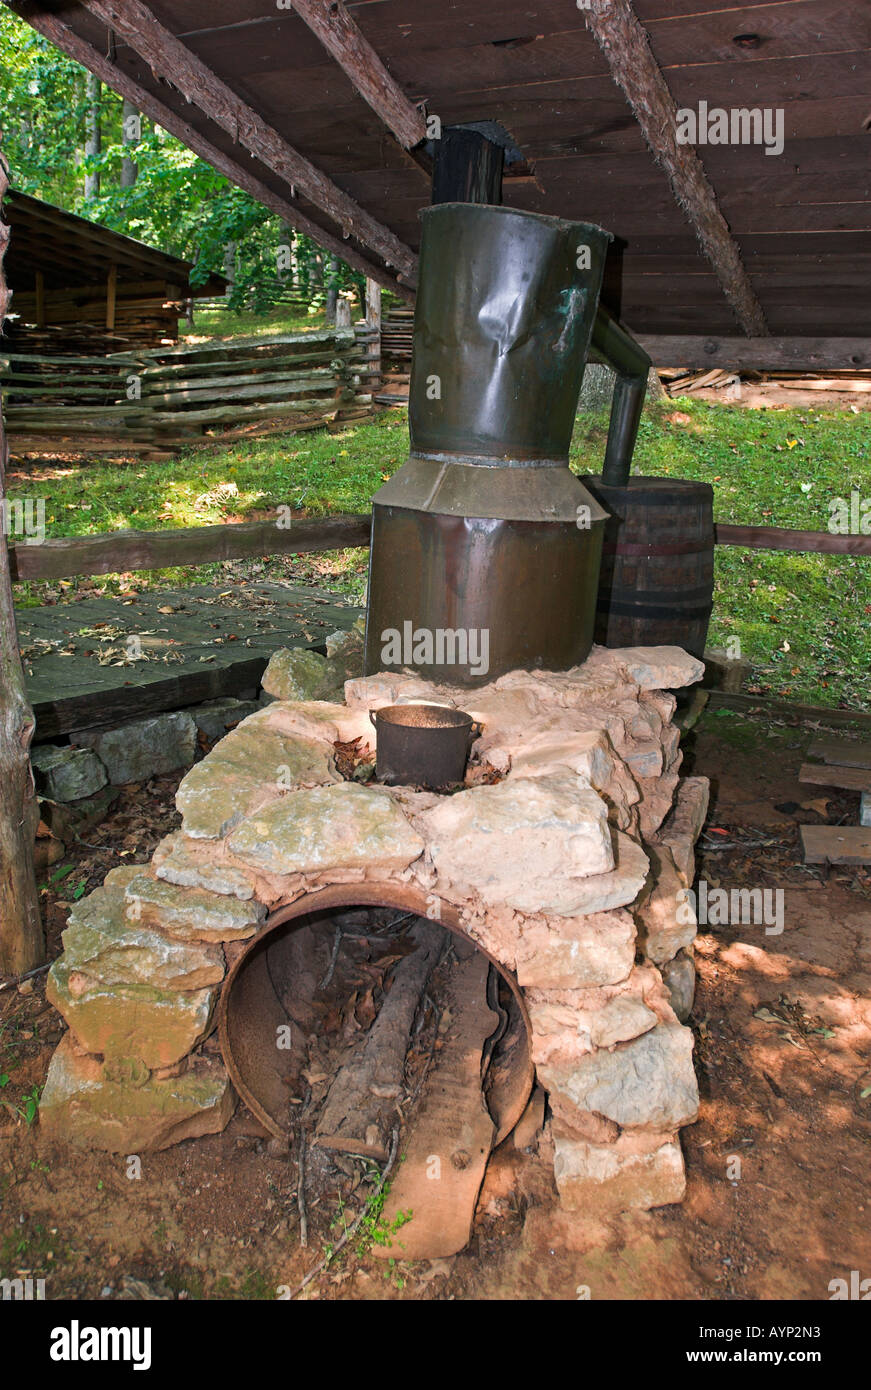 Moonshine still in the Museum of Appalachia near Norris in Tennessee, USA - Stock Image